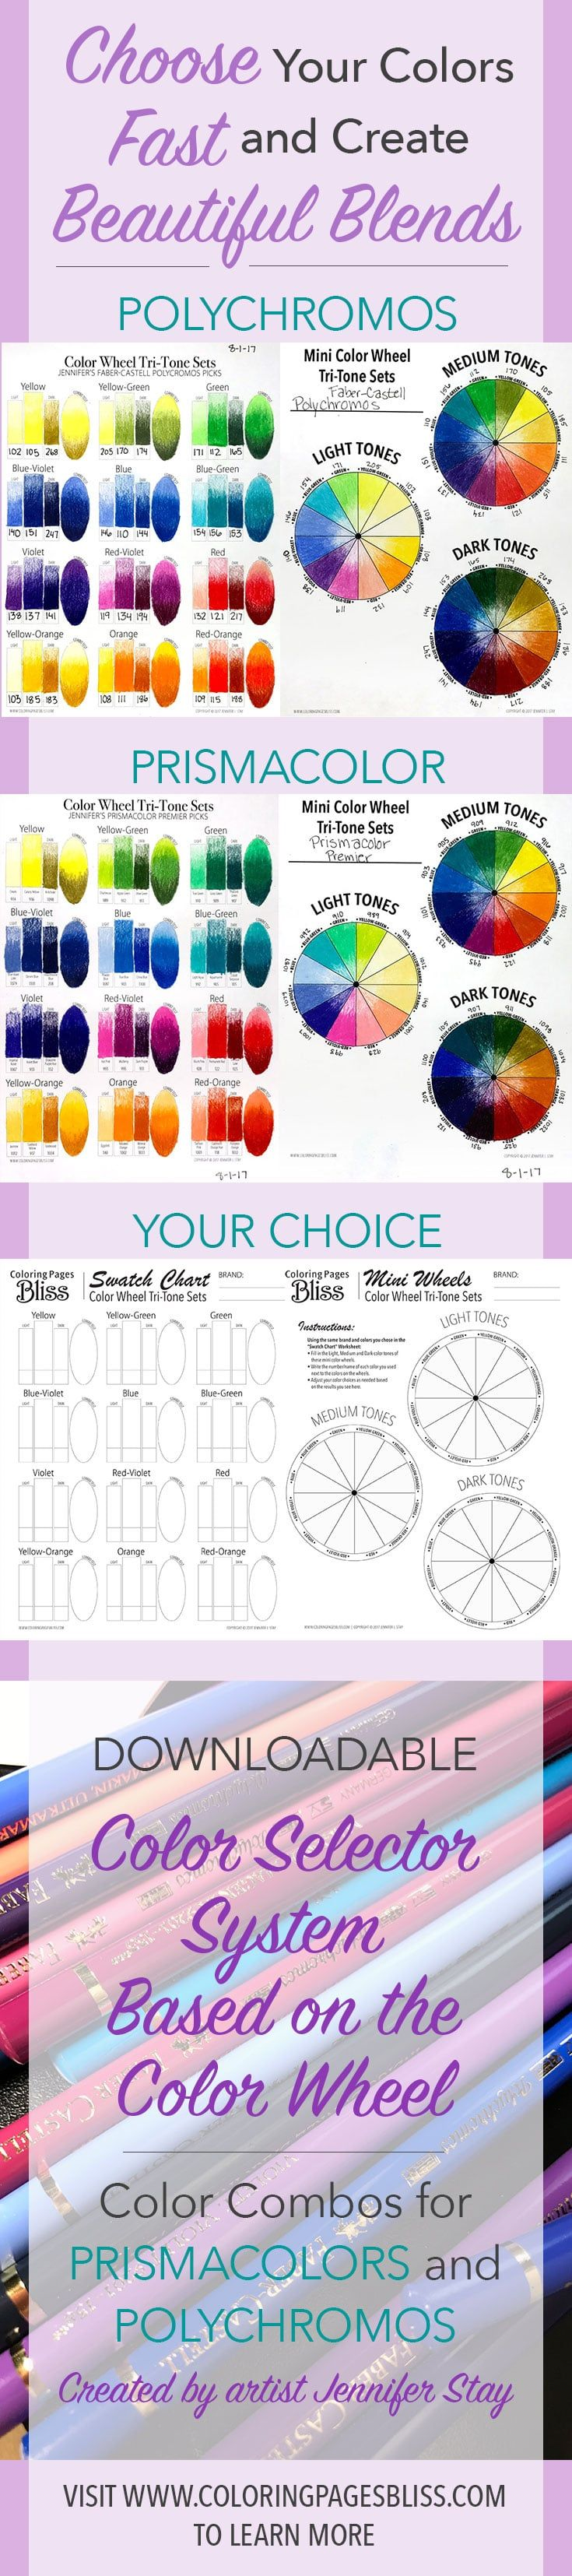 S blend coloring pages - Choose Colors Fast With Beautiful Blends This Color Wheel System Will Help You Pick Colors